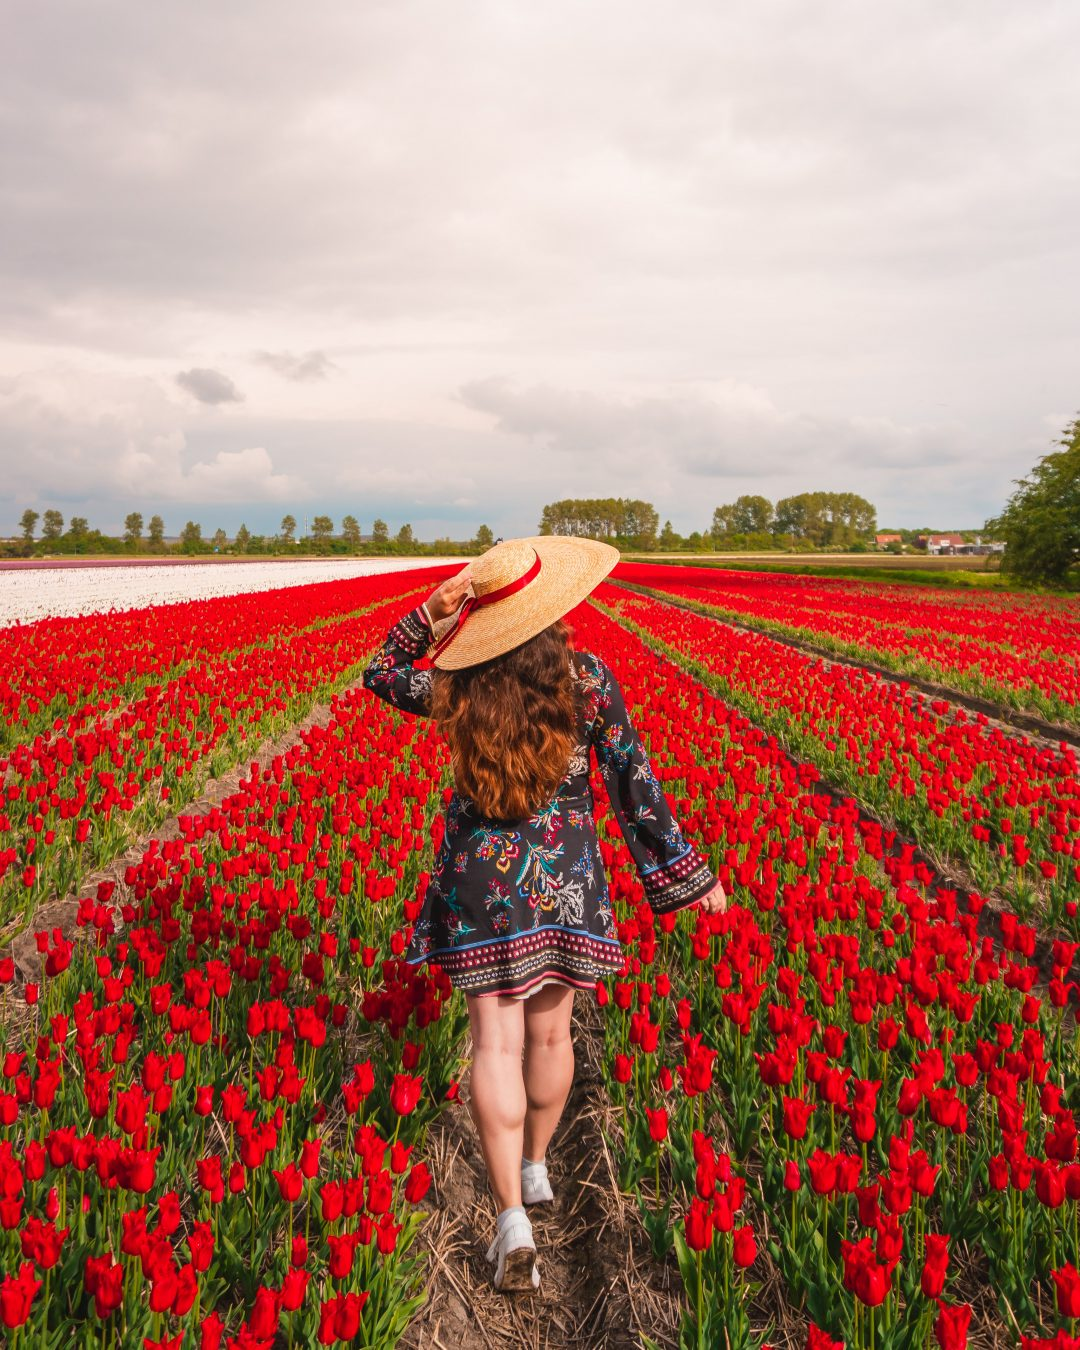 There are many incredible tulip fields near Amsterdam and these are my top recommendations!